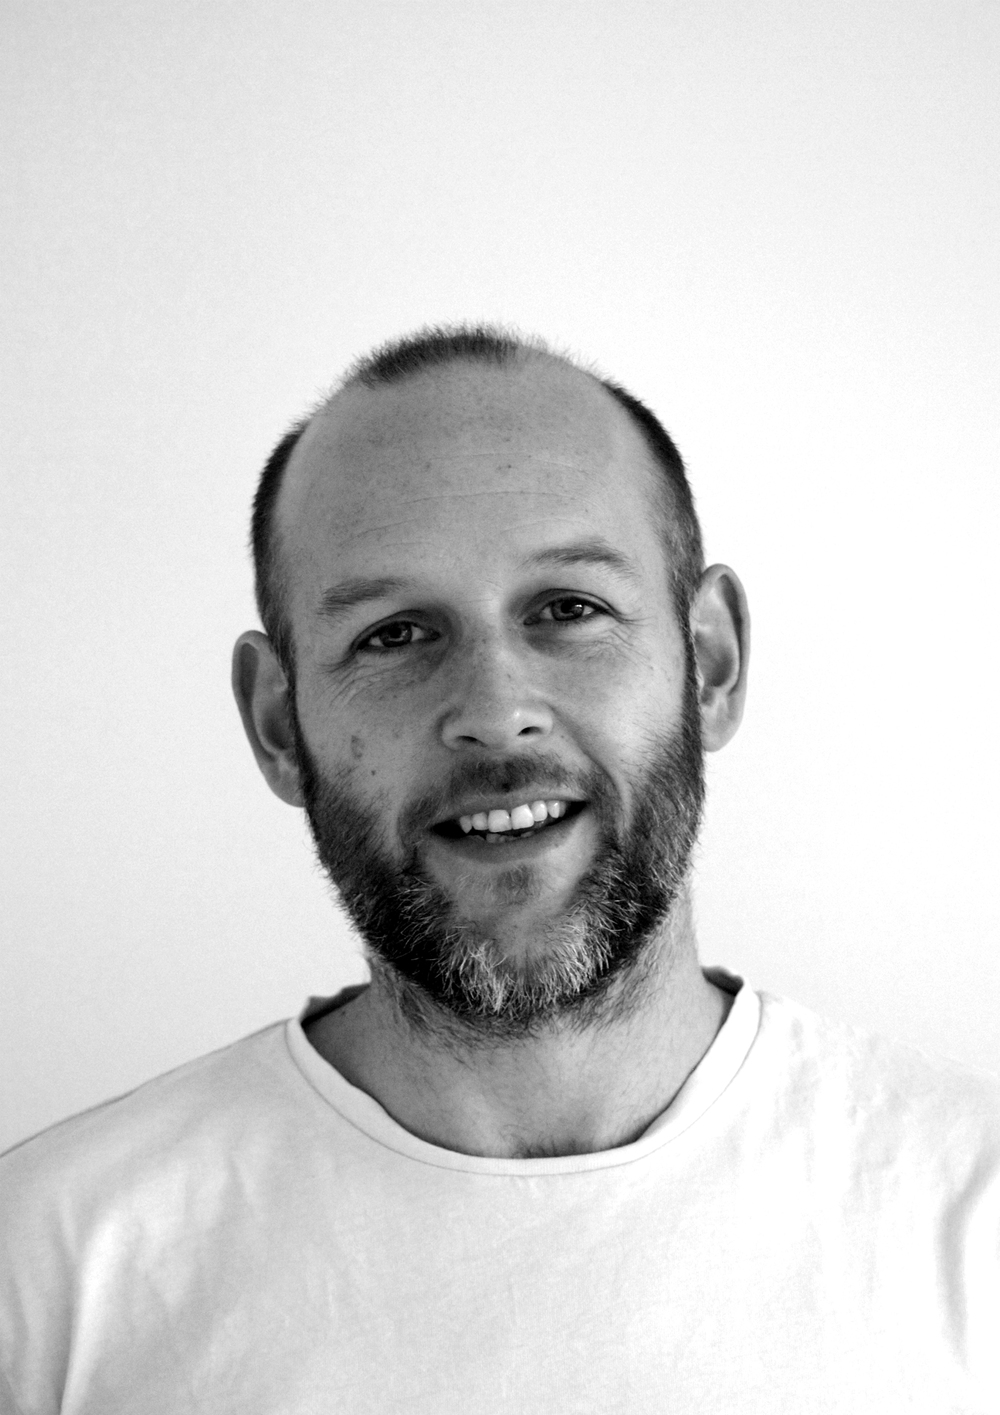 JOHN HEANEY Chartered Architectural Technologist, MCIAT